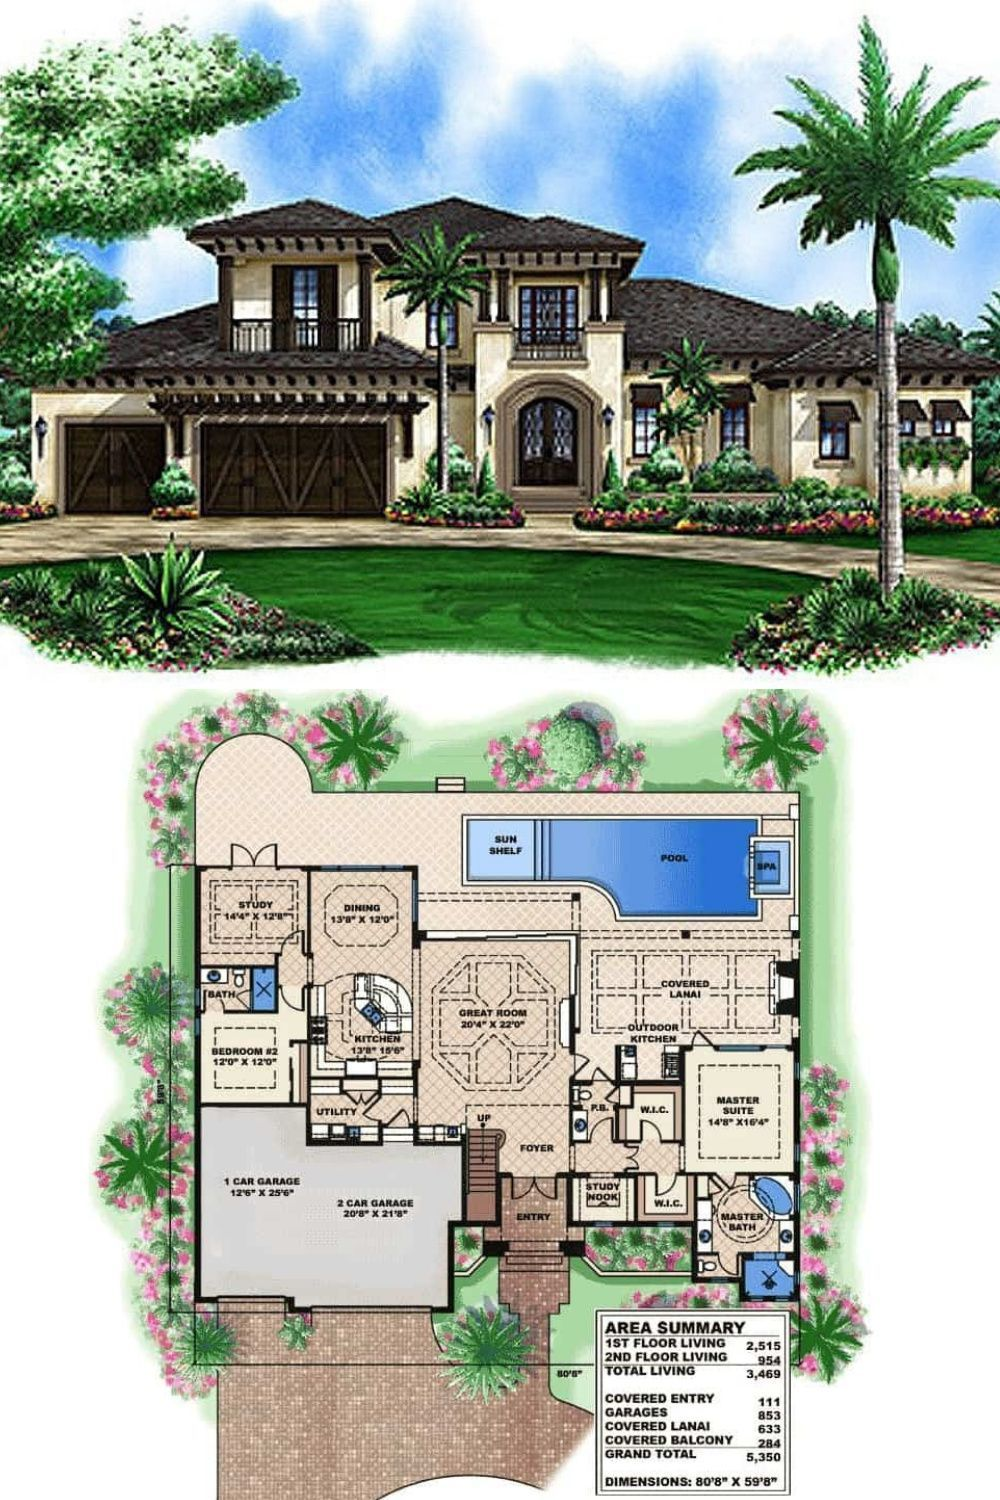 4 Bedroom Two Story Spanish Home With Balconies Floor Plan Spanish House Plans Spanish House Spanish Style Homes